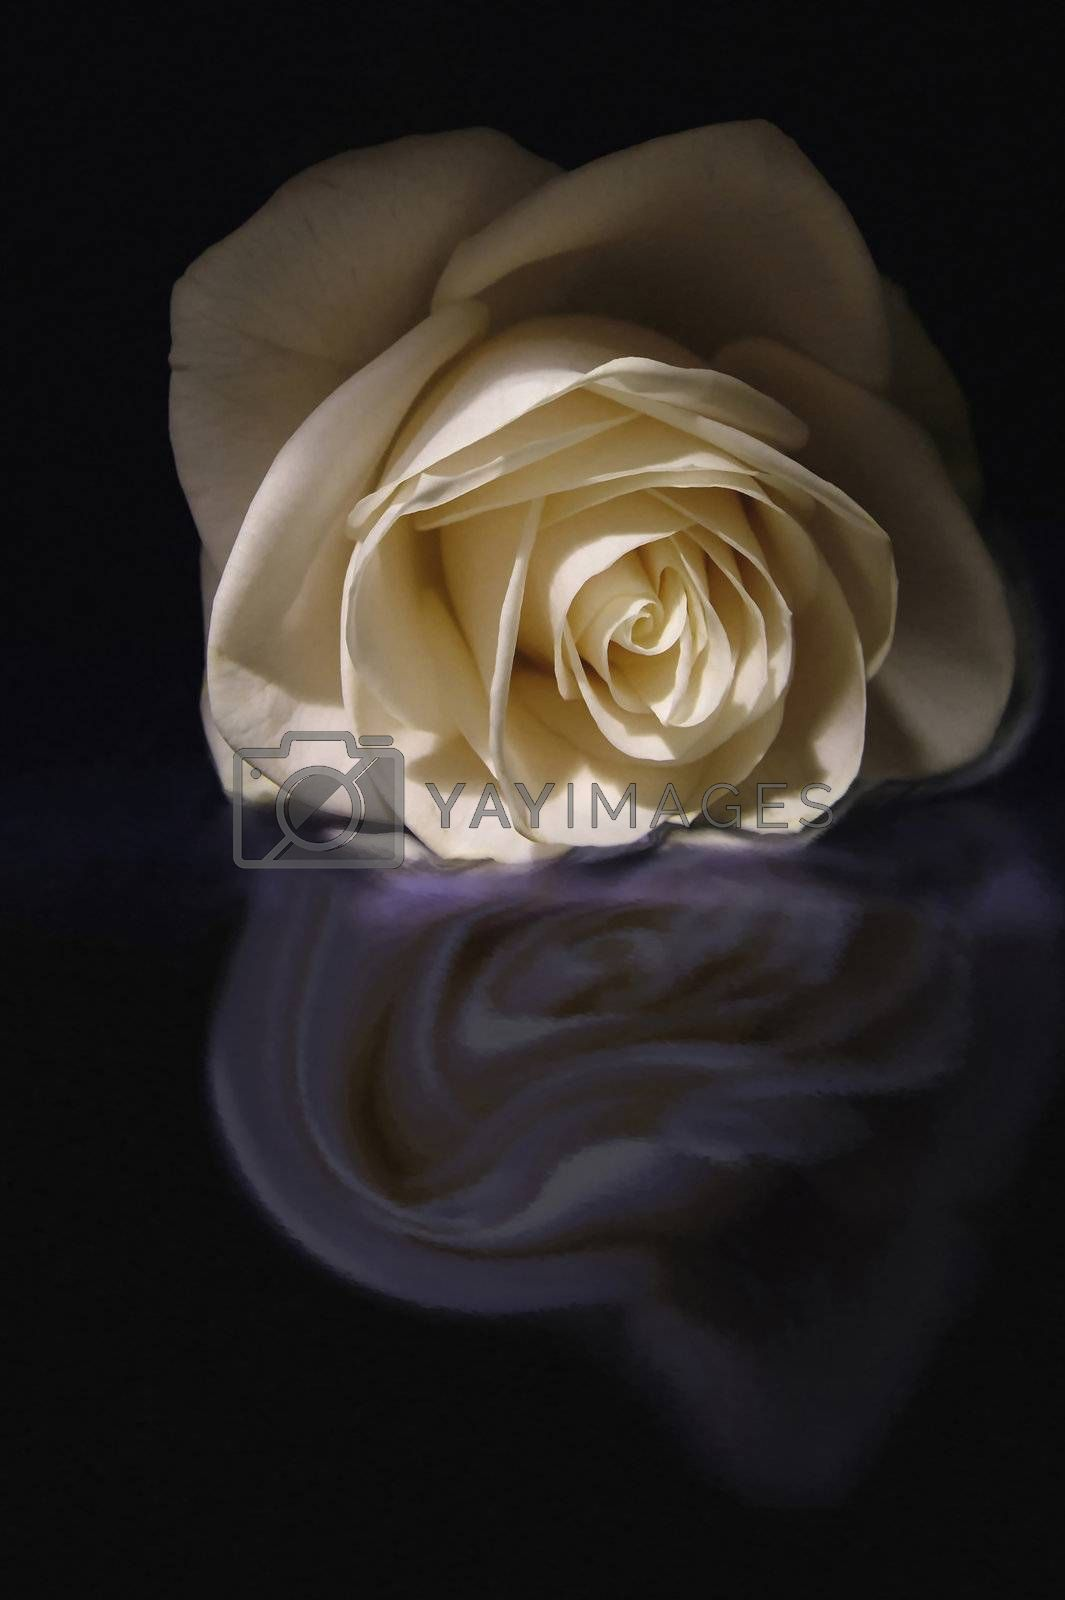 rose reflected by the water